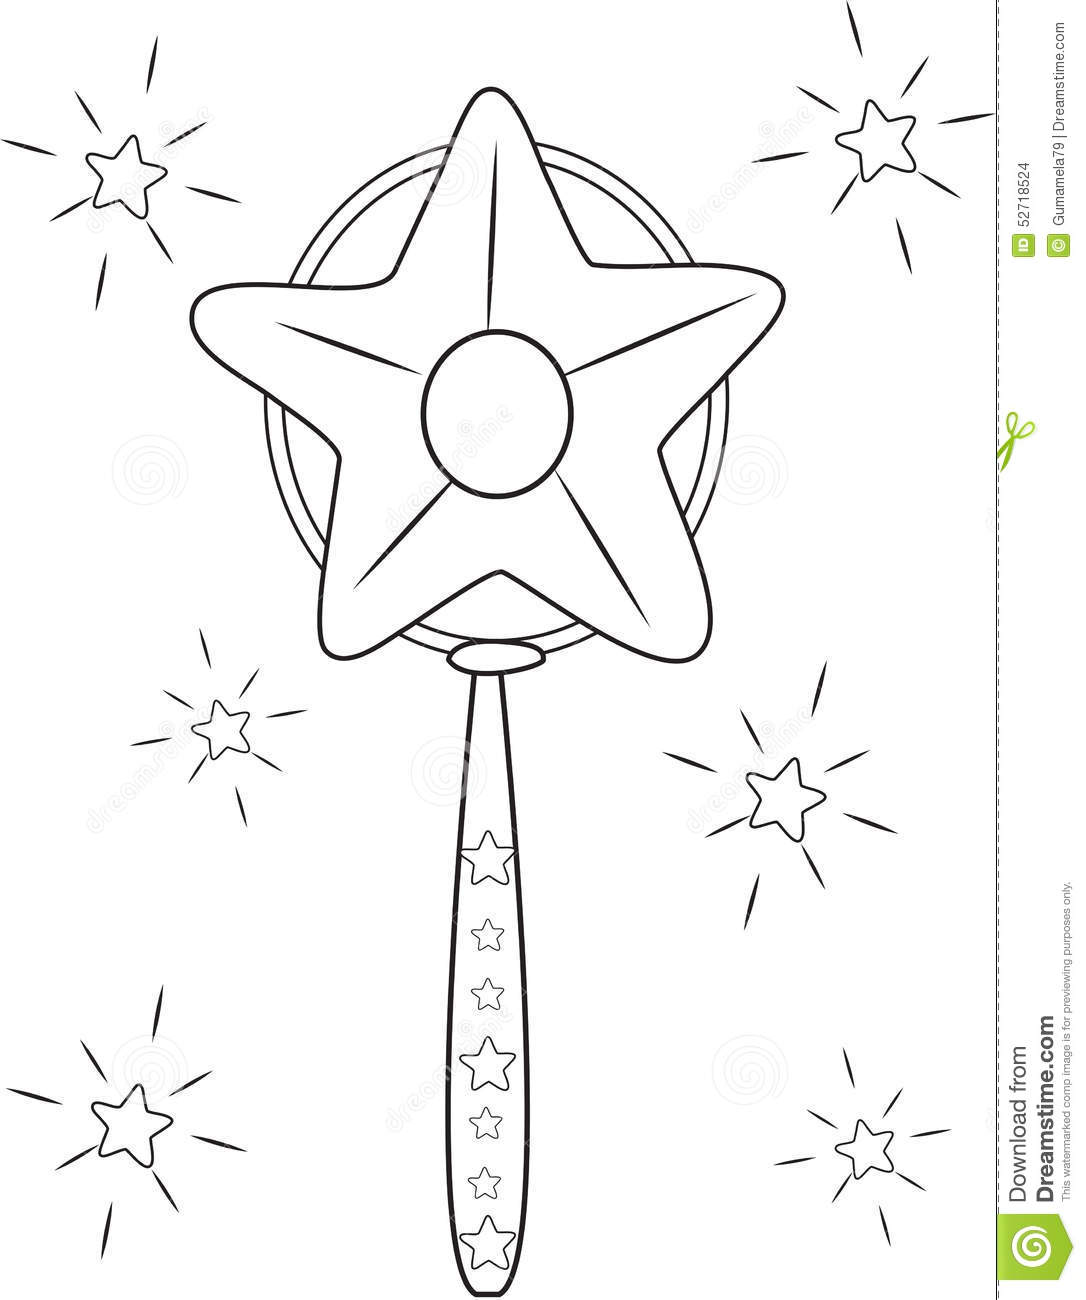 A Star Magic Wand Coloring Page Stock Illustration